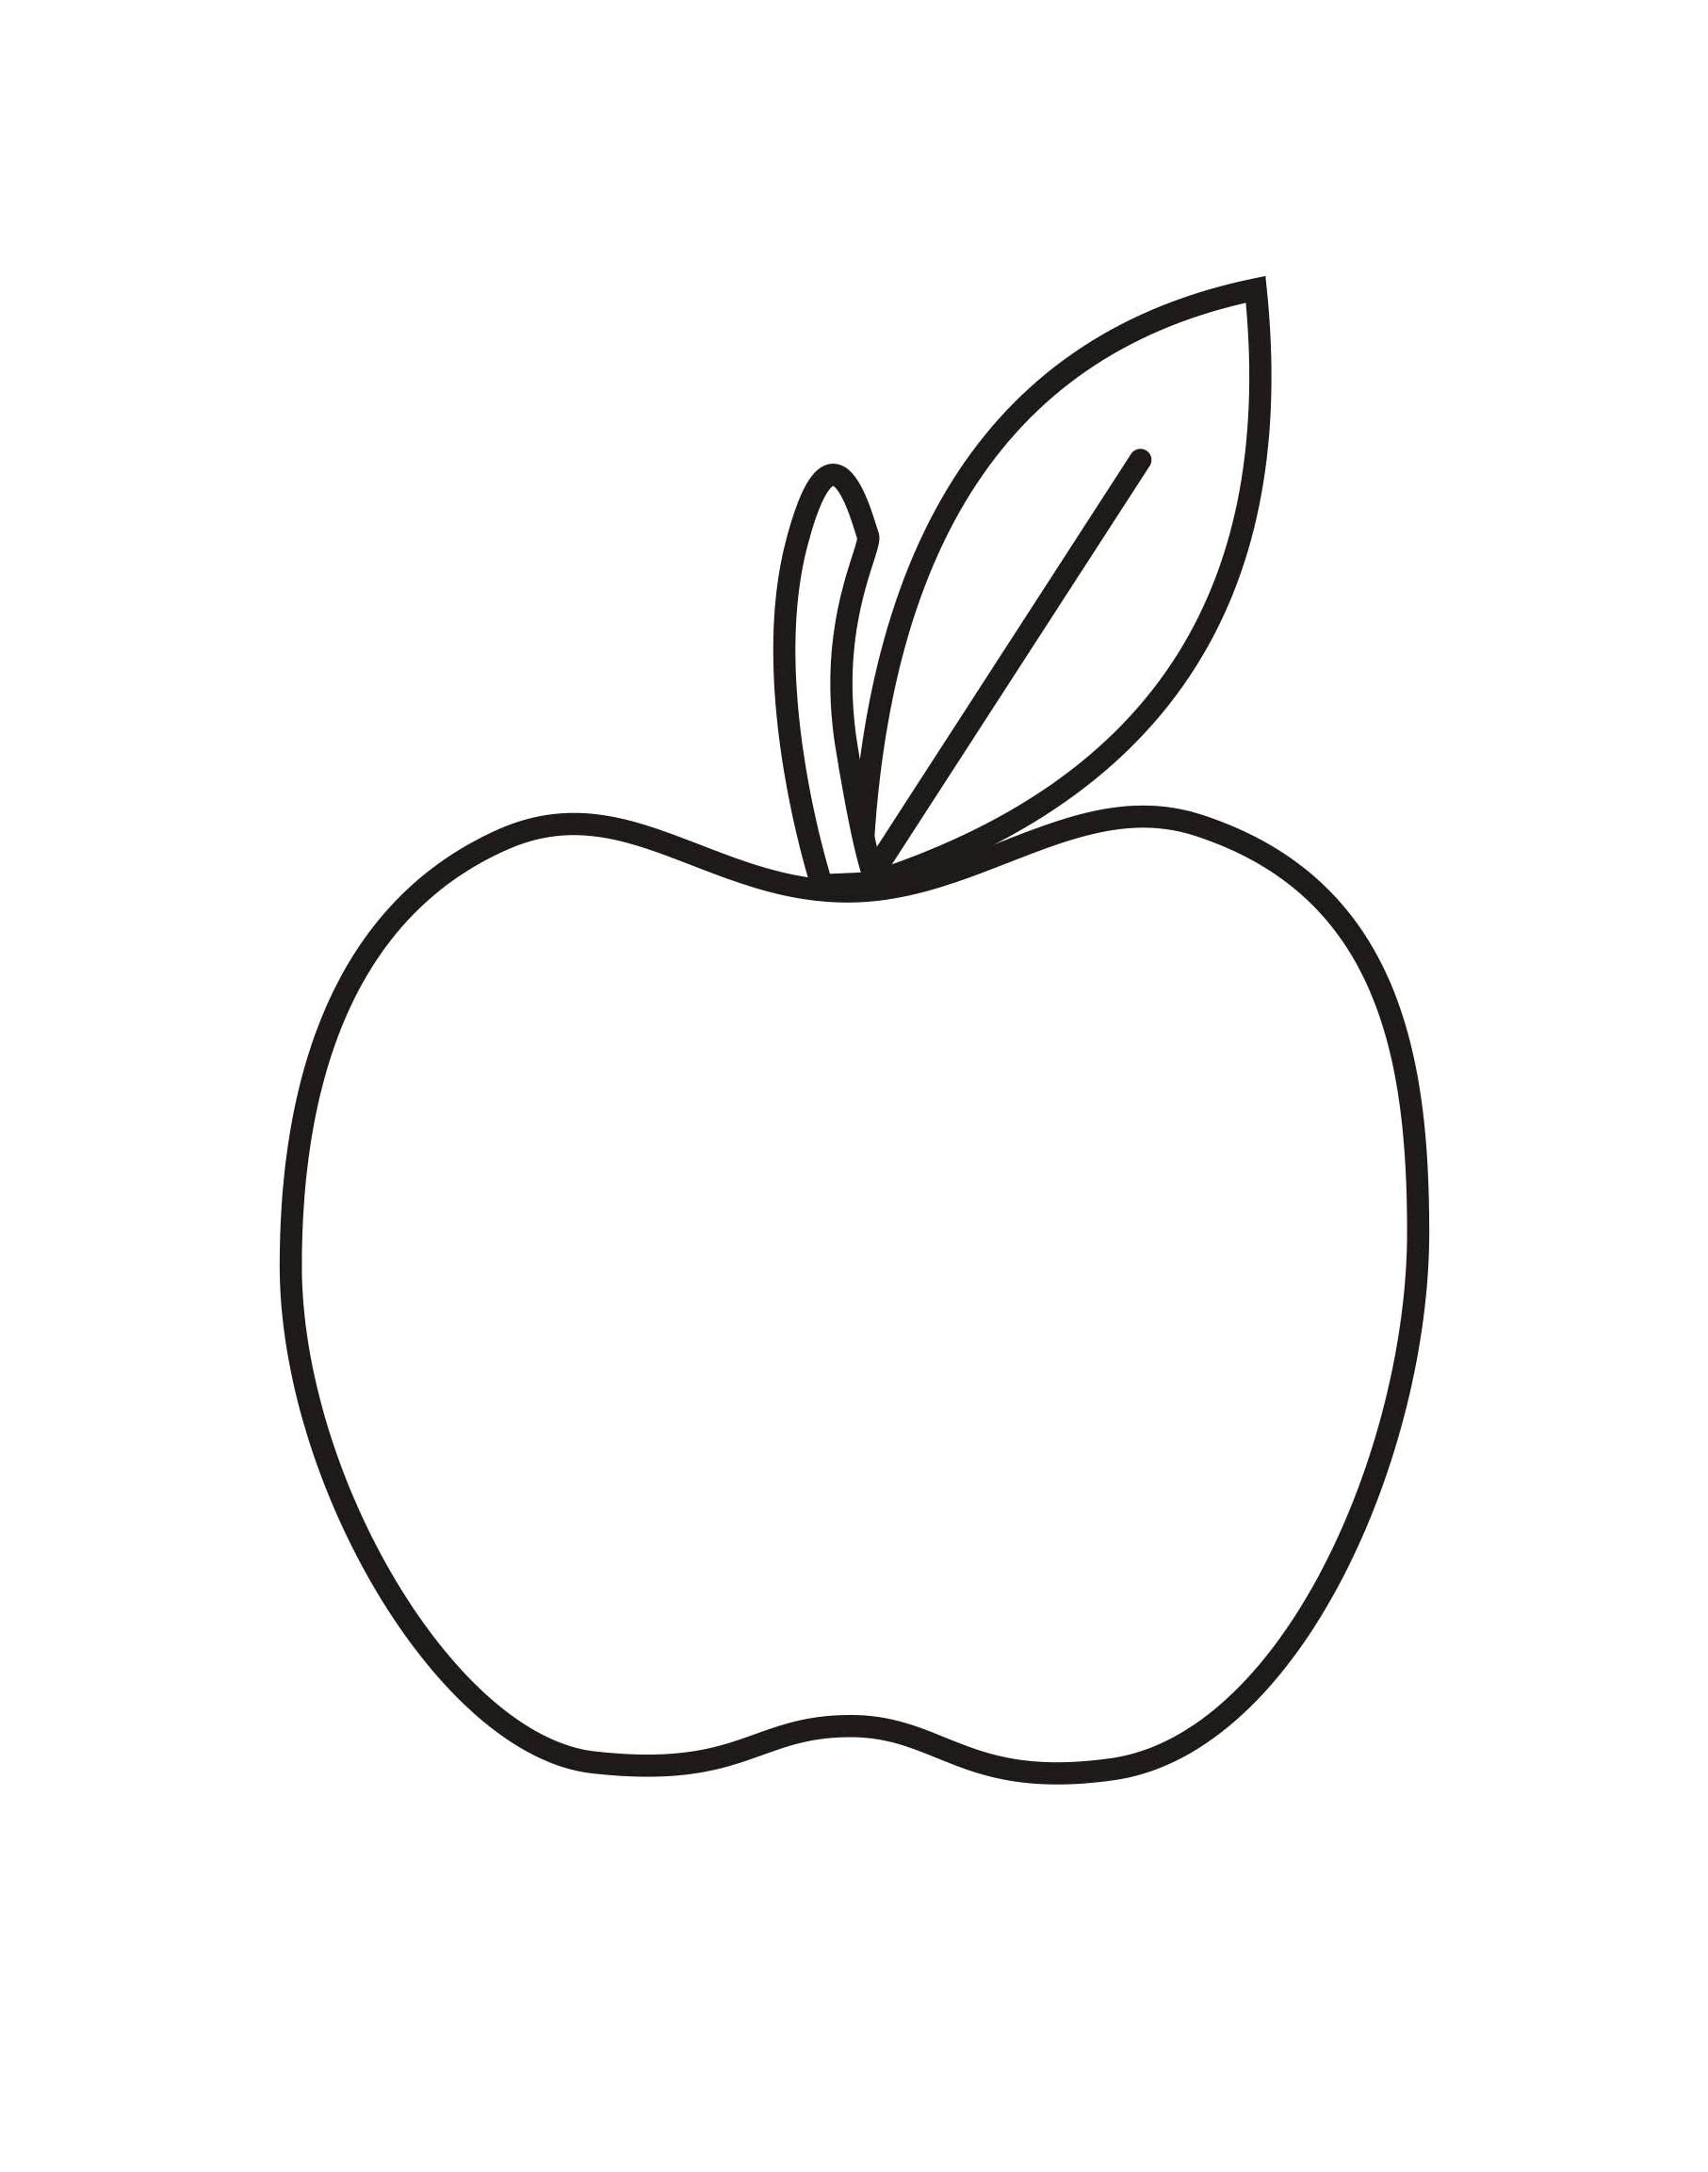 my apple book coloring pages - photo#23